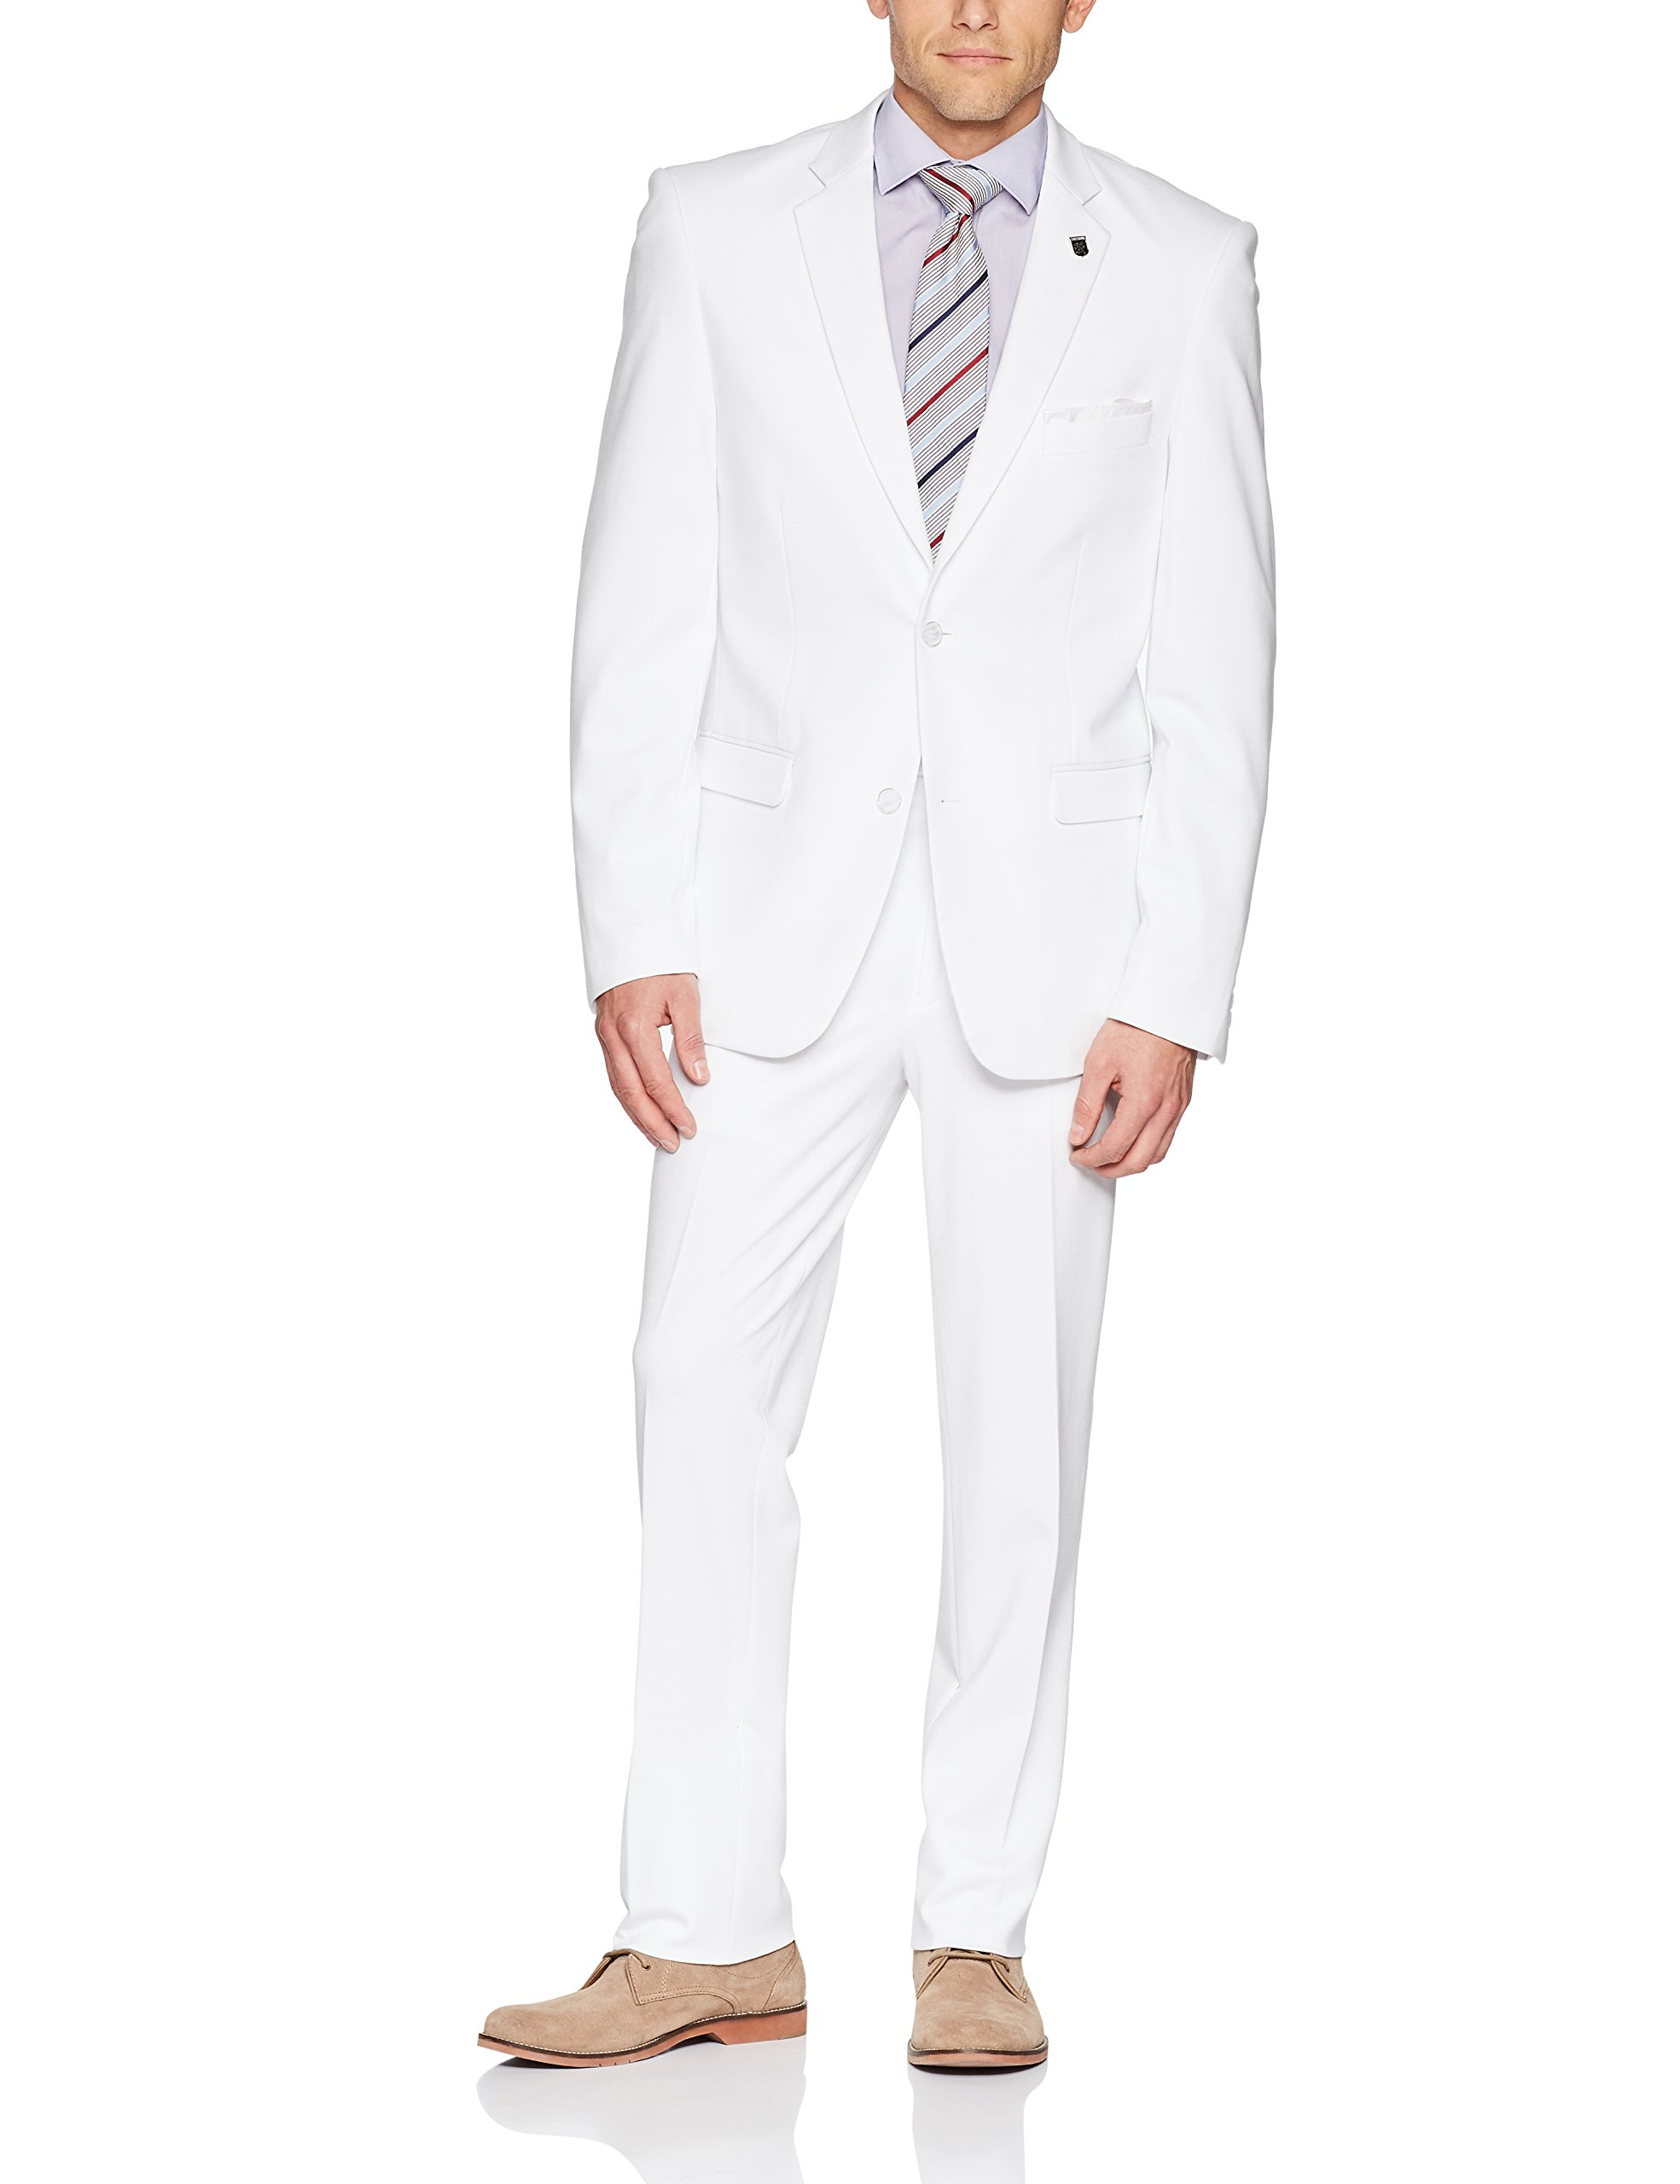 Stacy Adams Men's Big and Tall Single Breasted Real Flex Stretch Fabric Suit, White, 54 Long